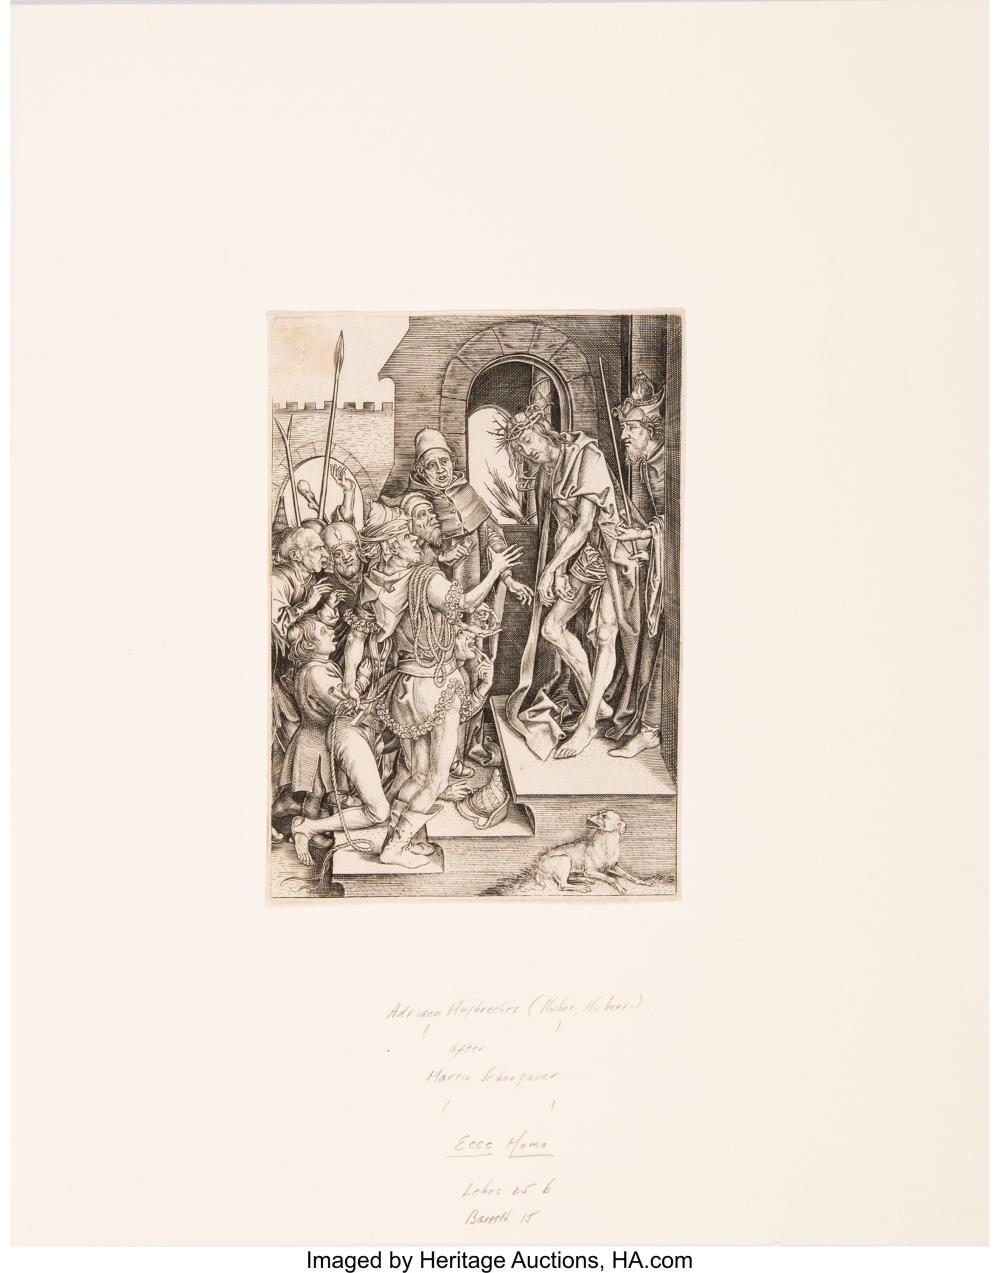 Lot 21165: After Martin Schongauer By Adriaen Huybrechts Ecce Homo Engraving on laid paper